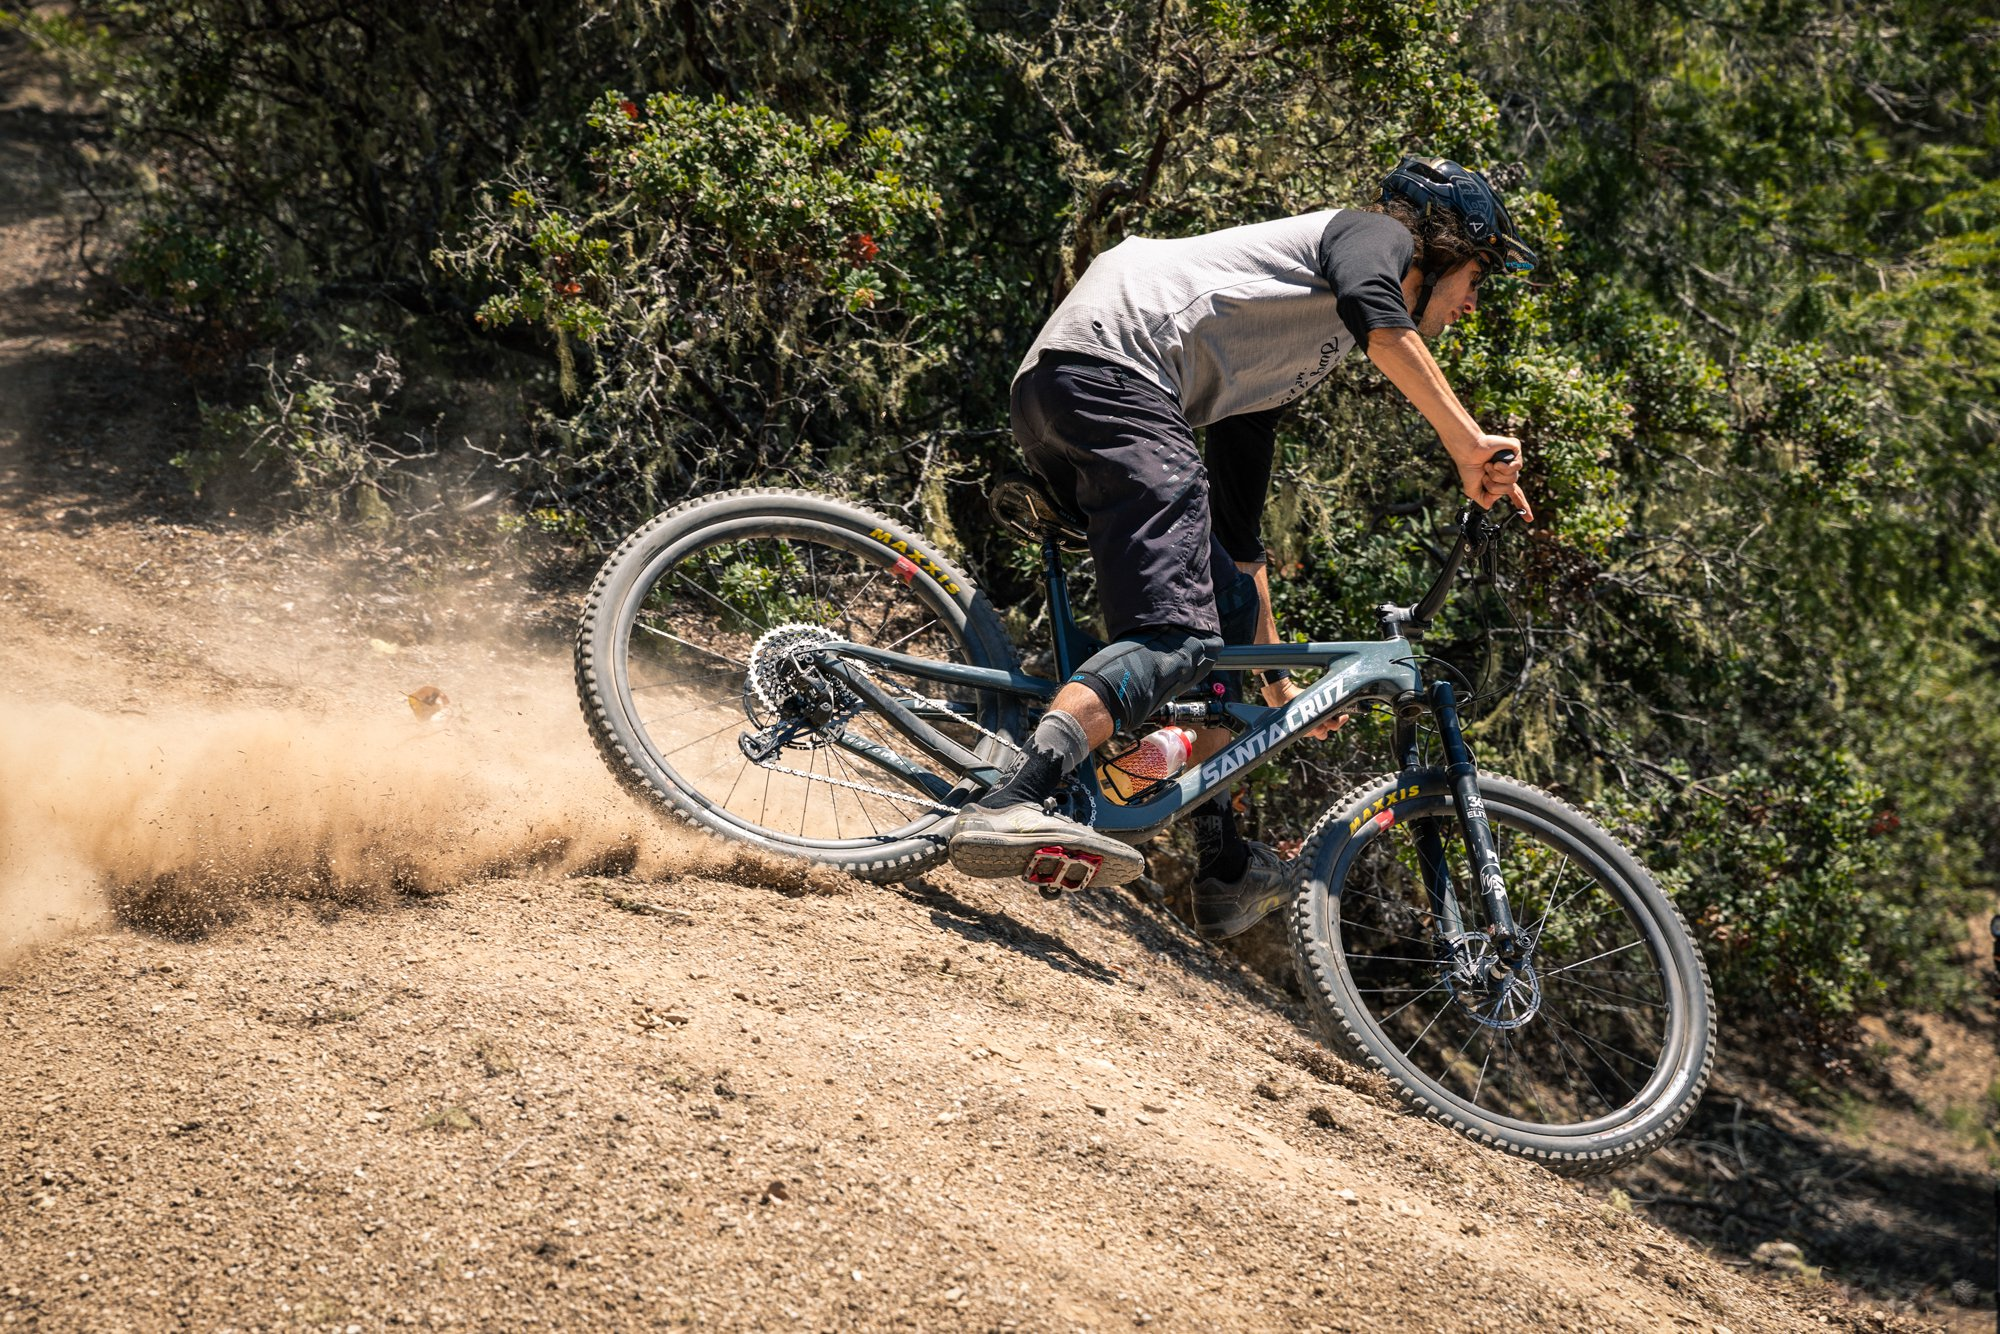 AJ sliding through loose Californian corner on the Maxxis Assegai